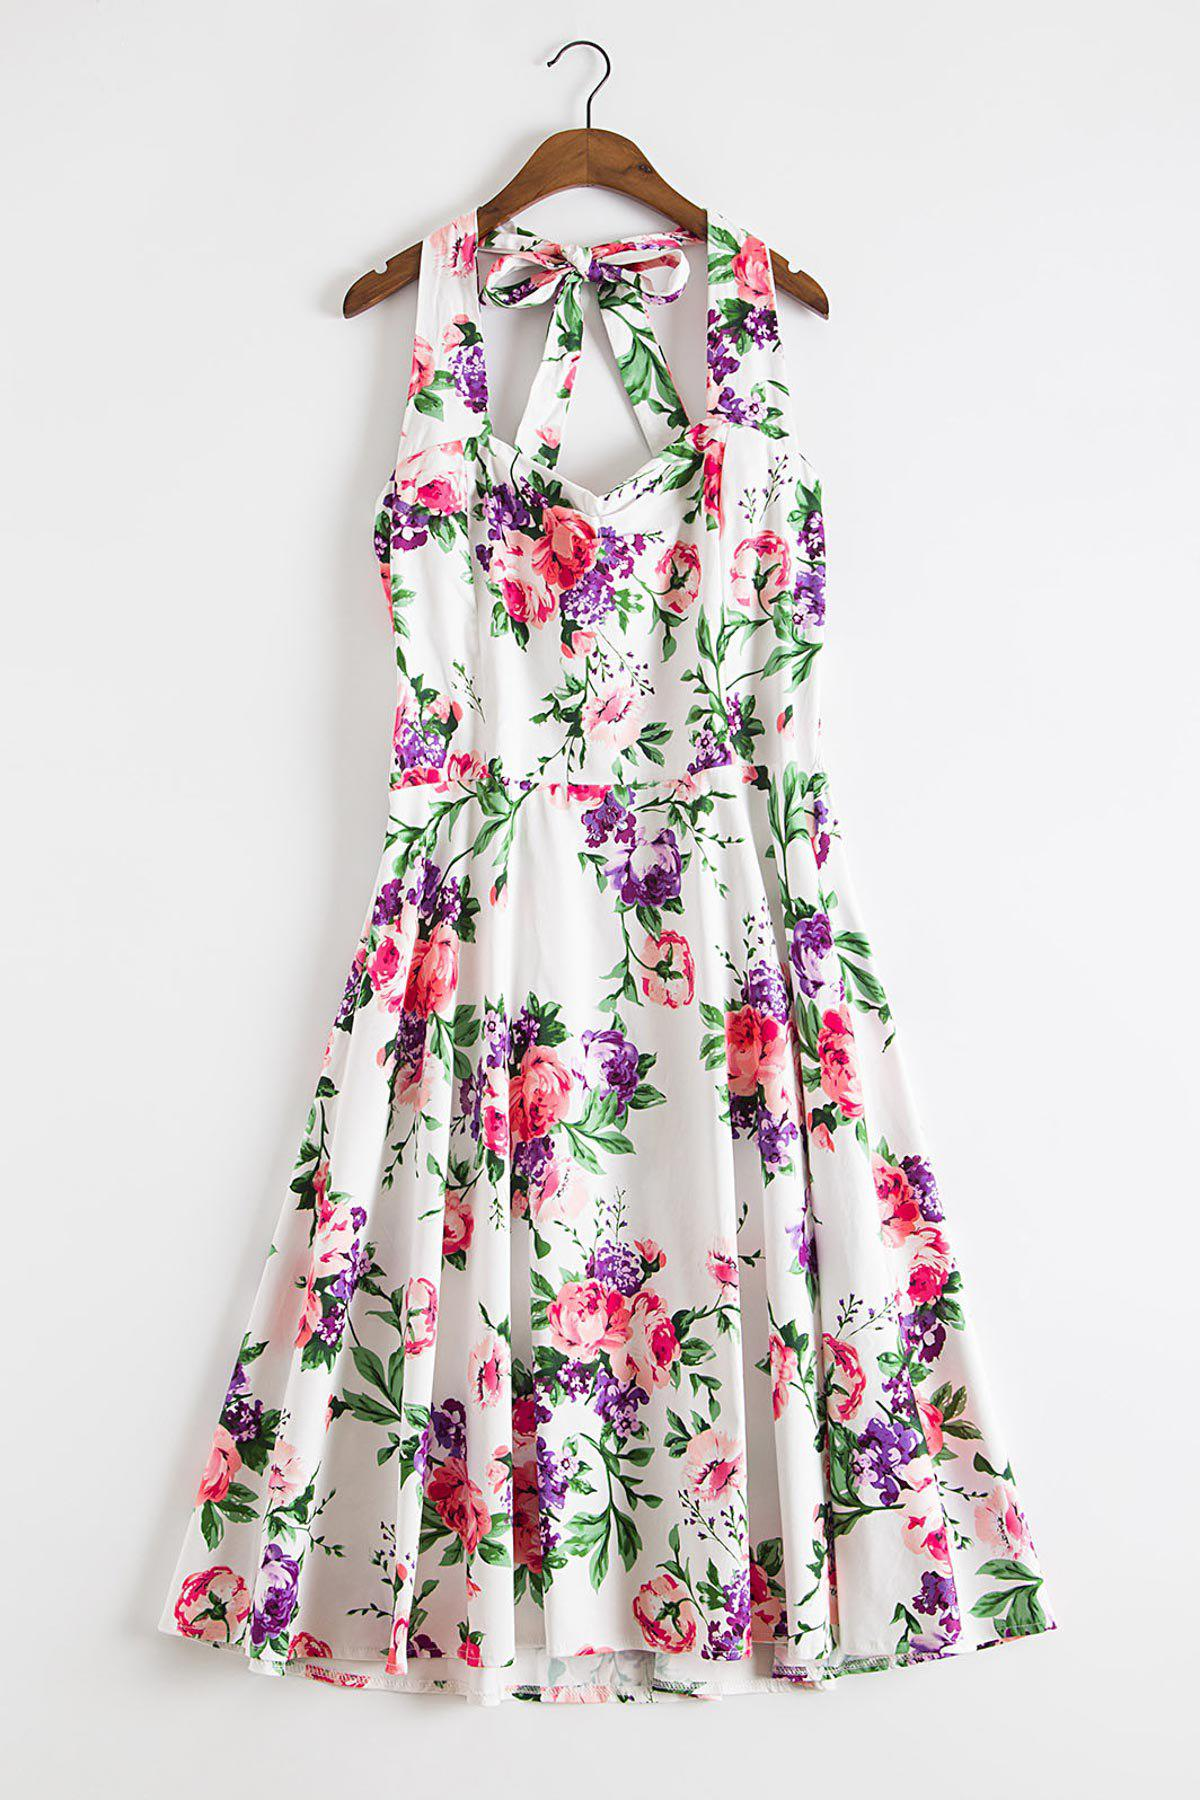 Endearing Halter Sleeveless Floral Printed High Waist Ball Gown Dress For Women - PURPLE 2XL